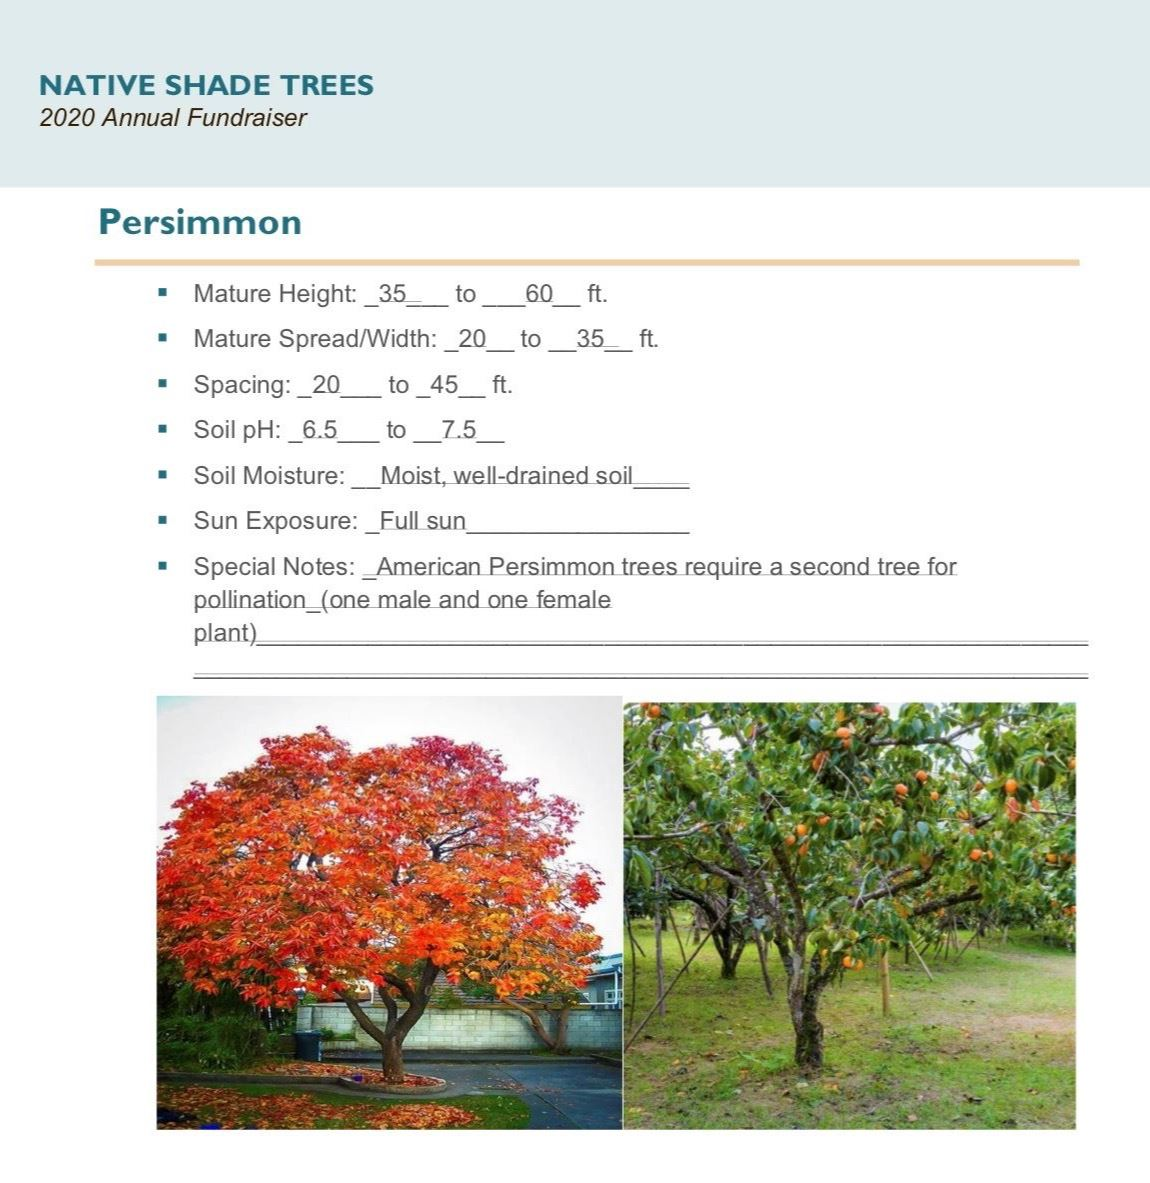 Brochure Template Draft_Native_Shade_Trees2.0(USE)pg8